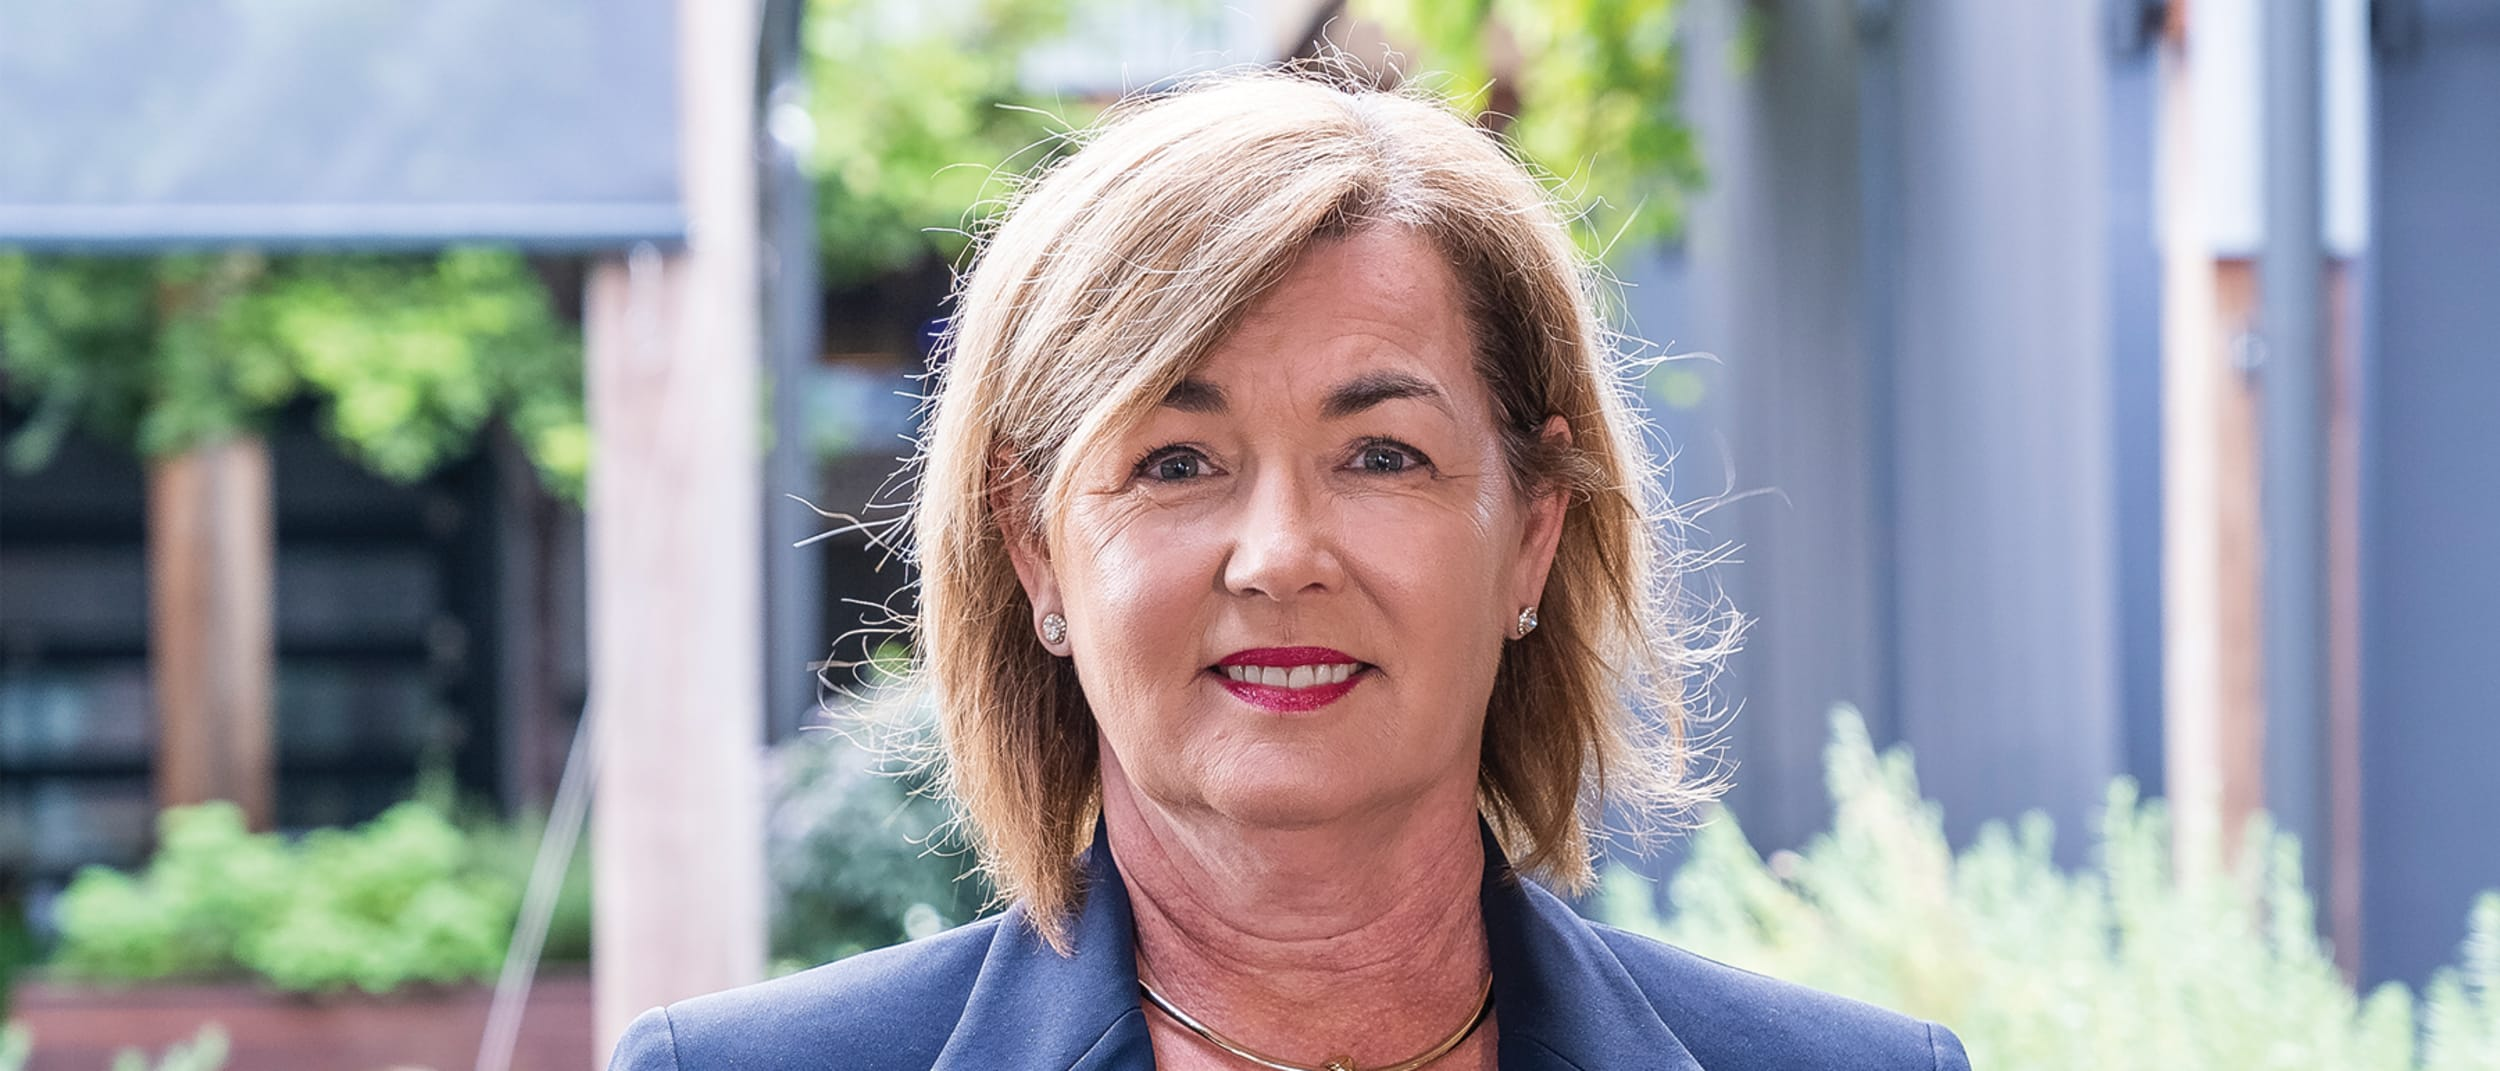 Philippa Woolf: NSW Police Legacy: Westfield Local Heroes 2019